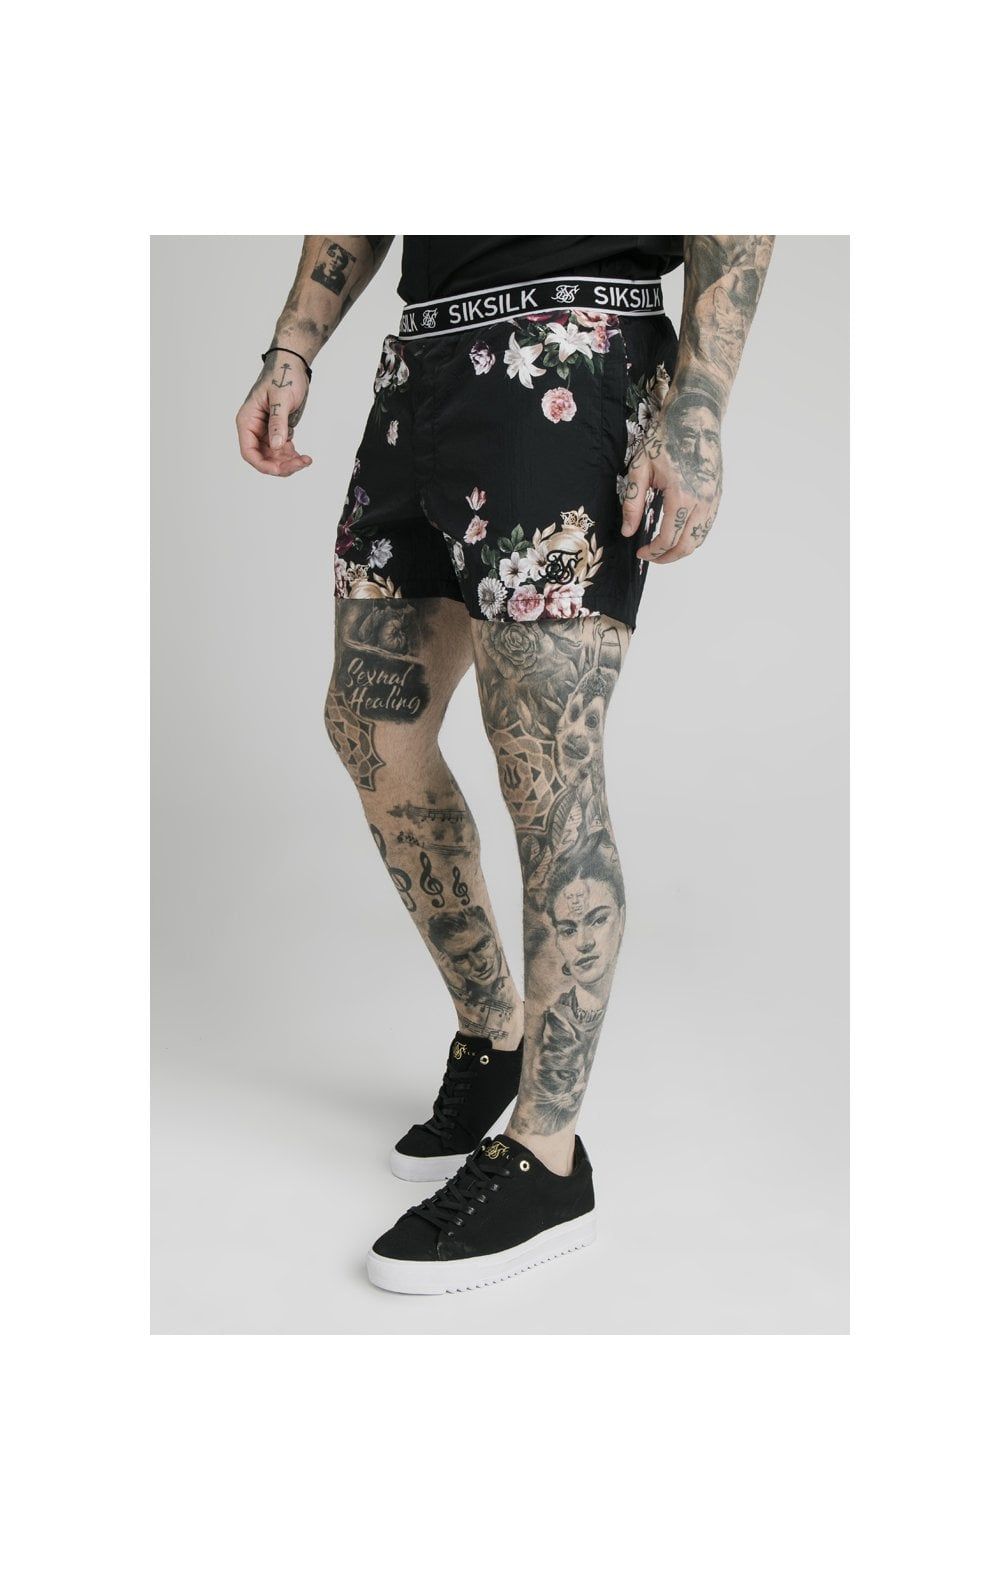 Load image into Gallery viewer, SikSilk Prestige Floral Swim Shorts - Black (2)